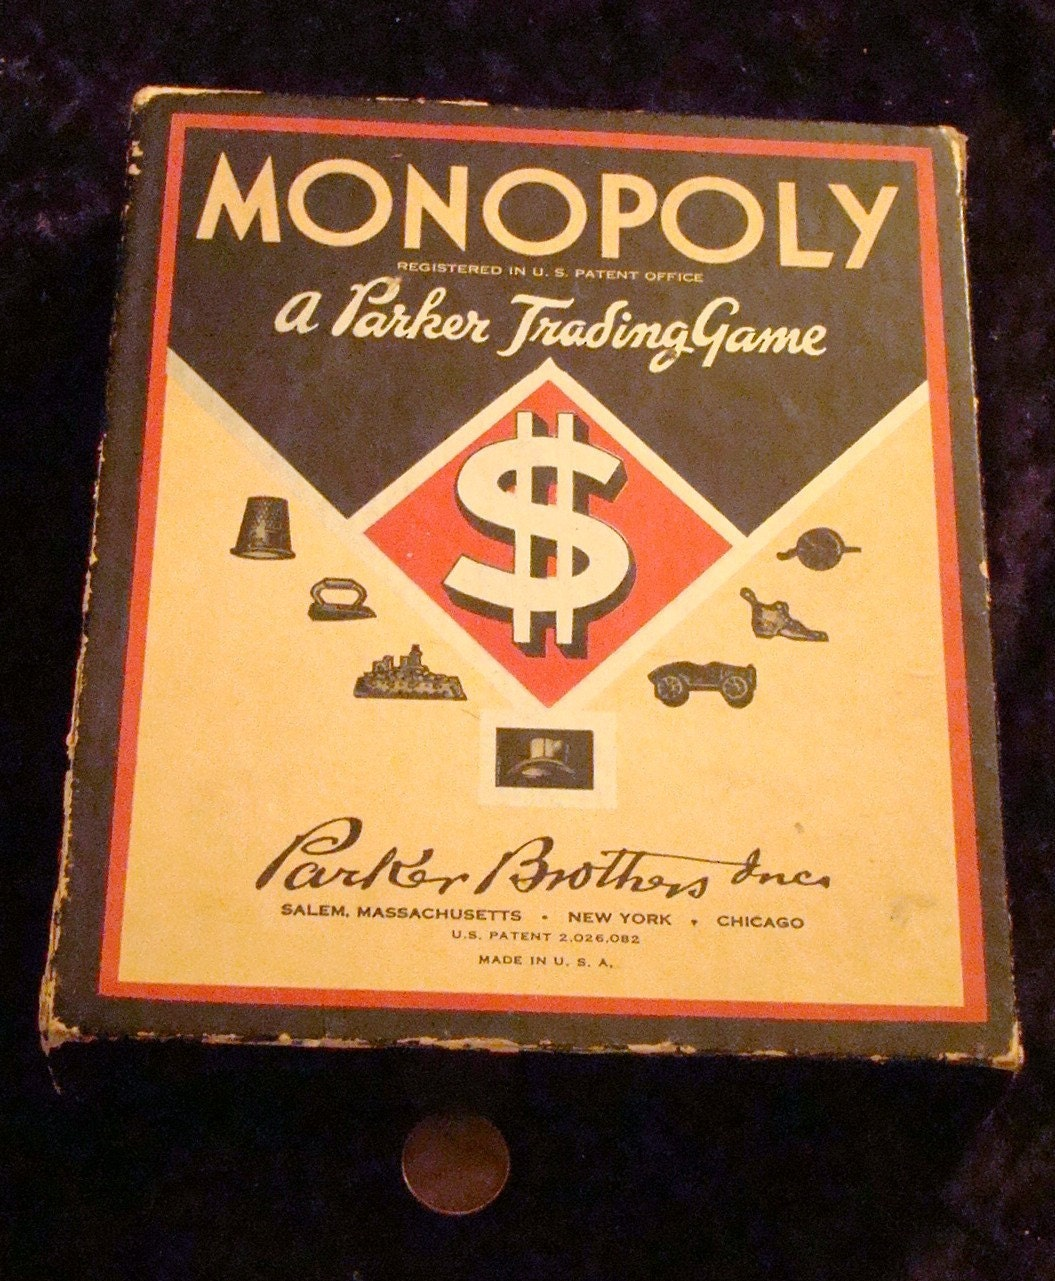 monopoly short game instructions